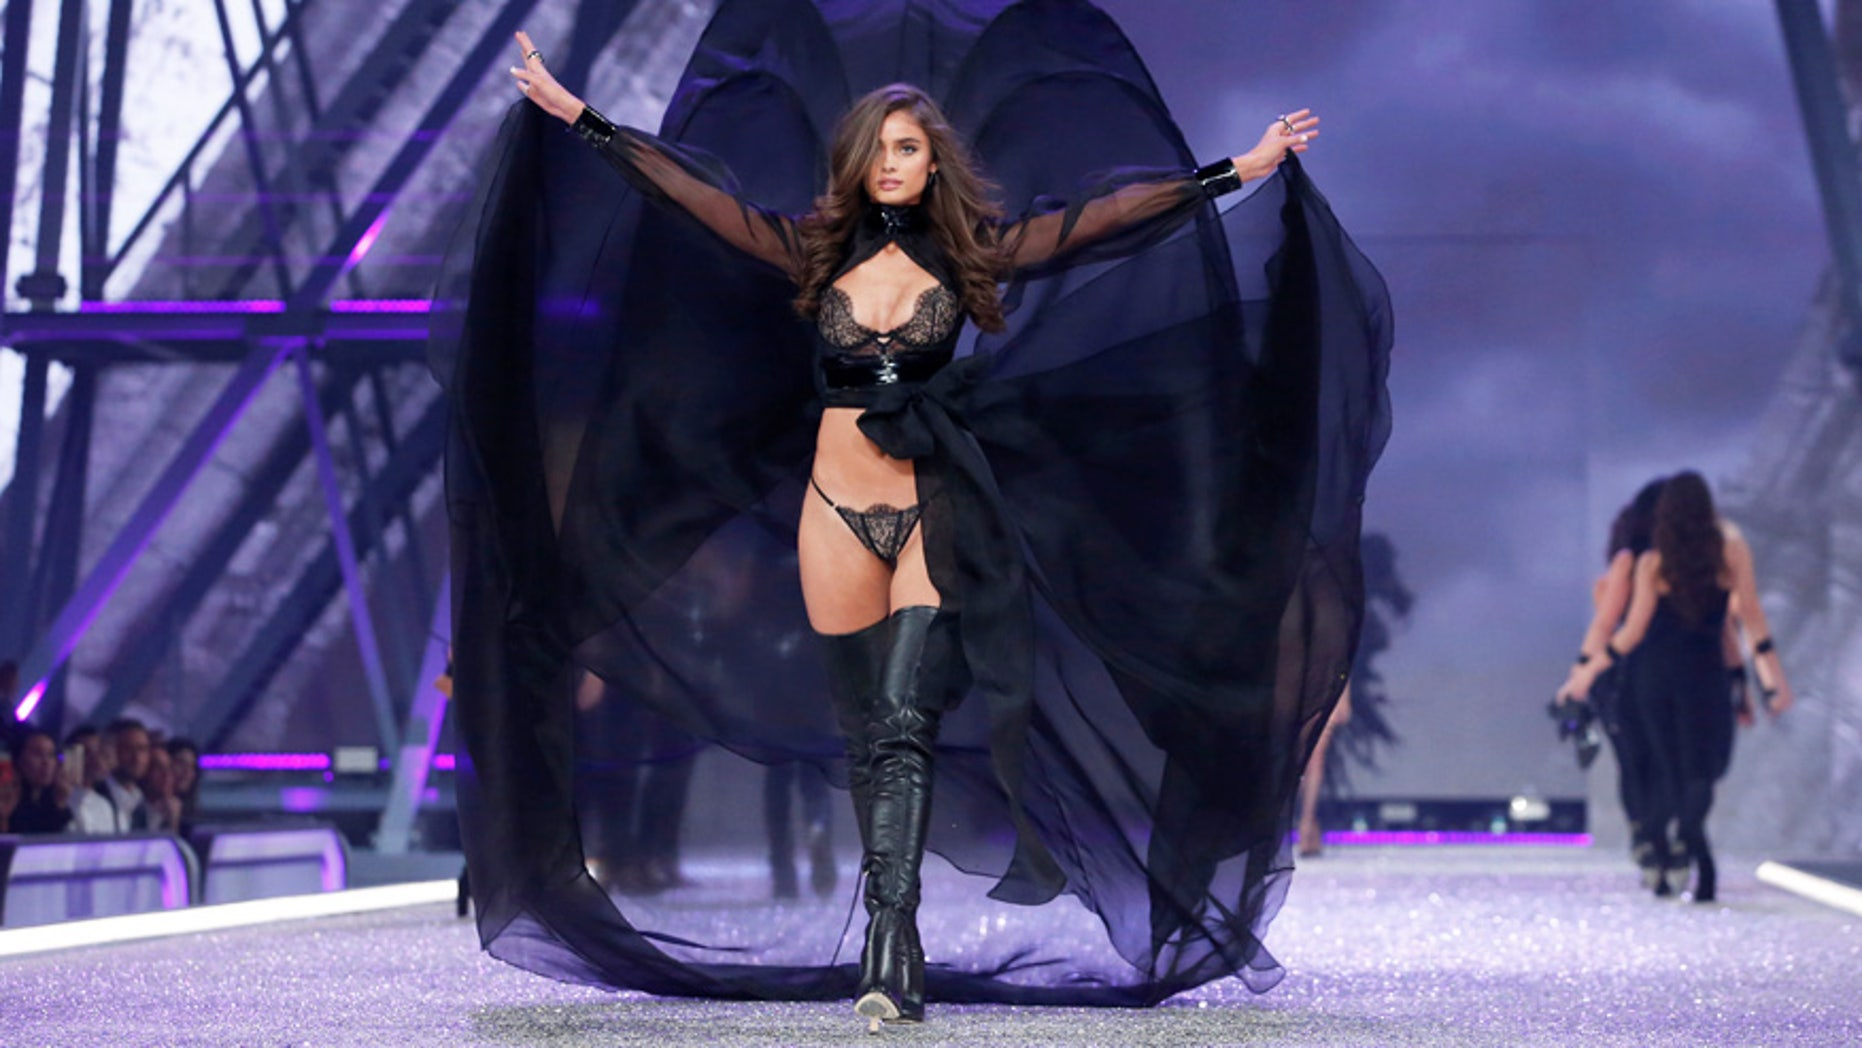 Model Taylor Hill presents a creation during the 2016 Victoria's Secret Fashion Show at the Grand Palais in Paris, France, November 30, 2016.